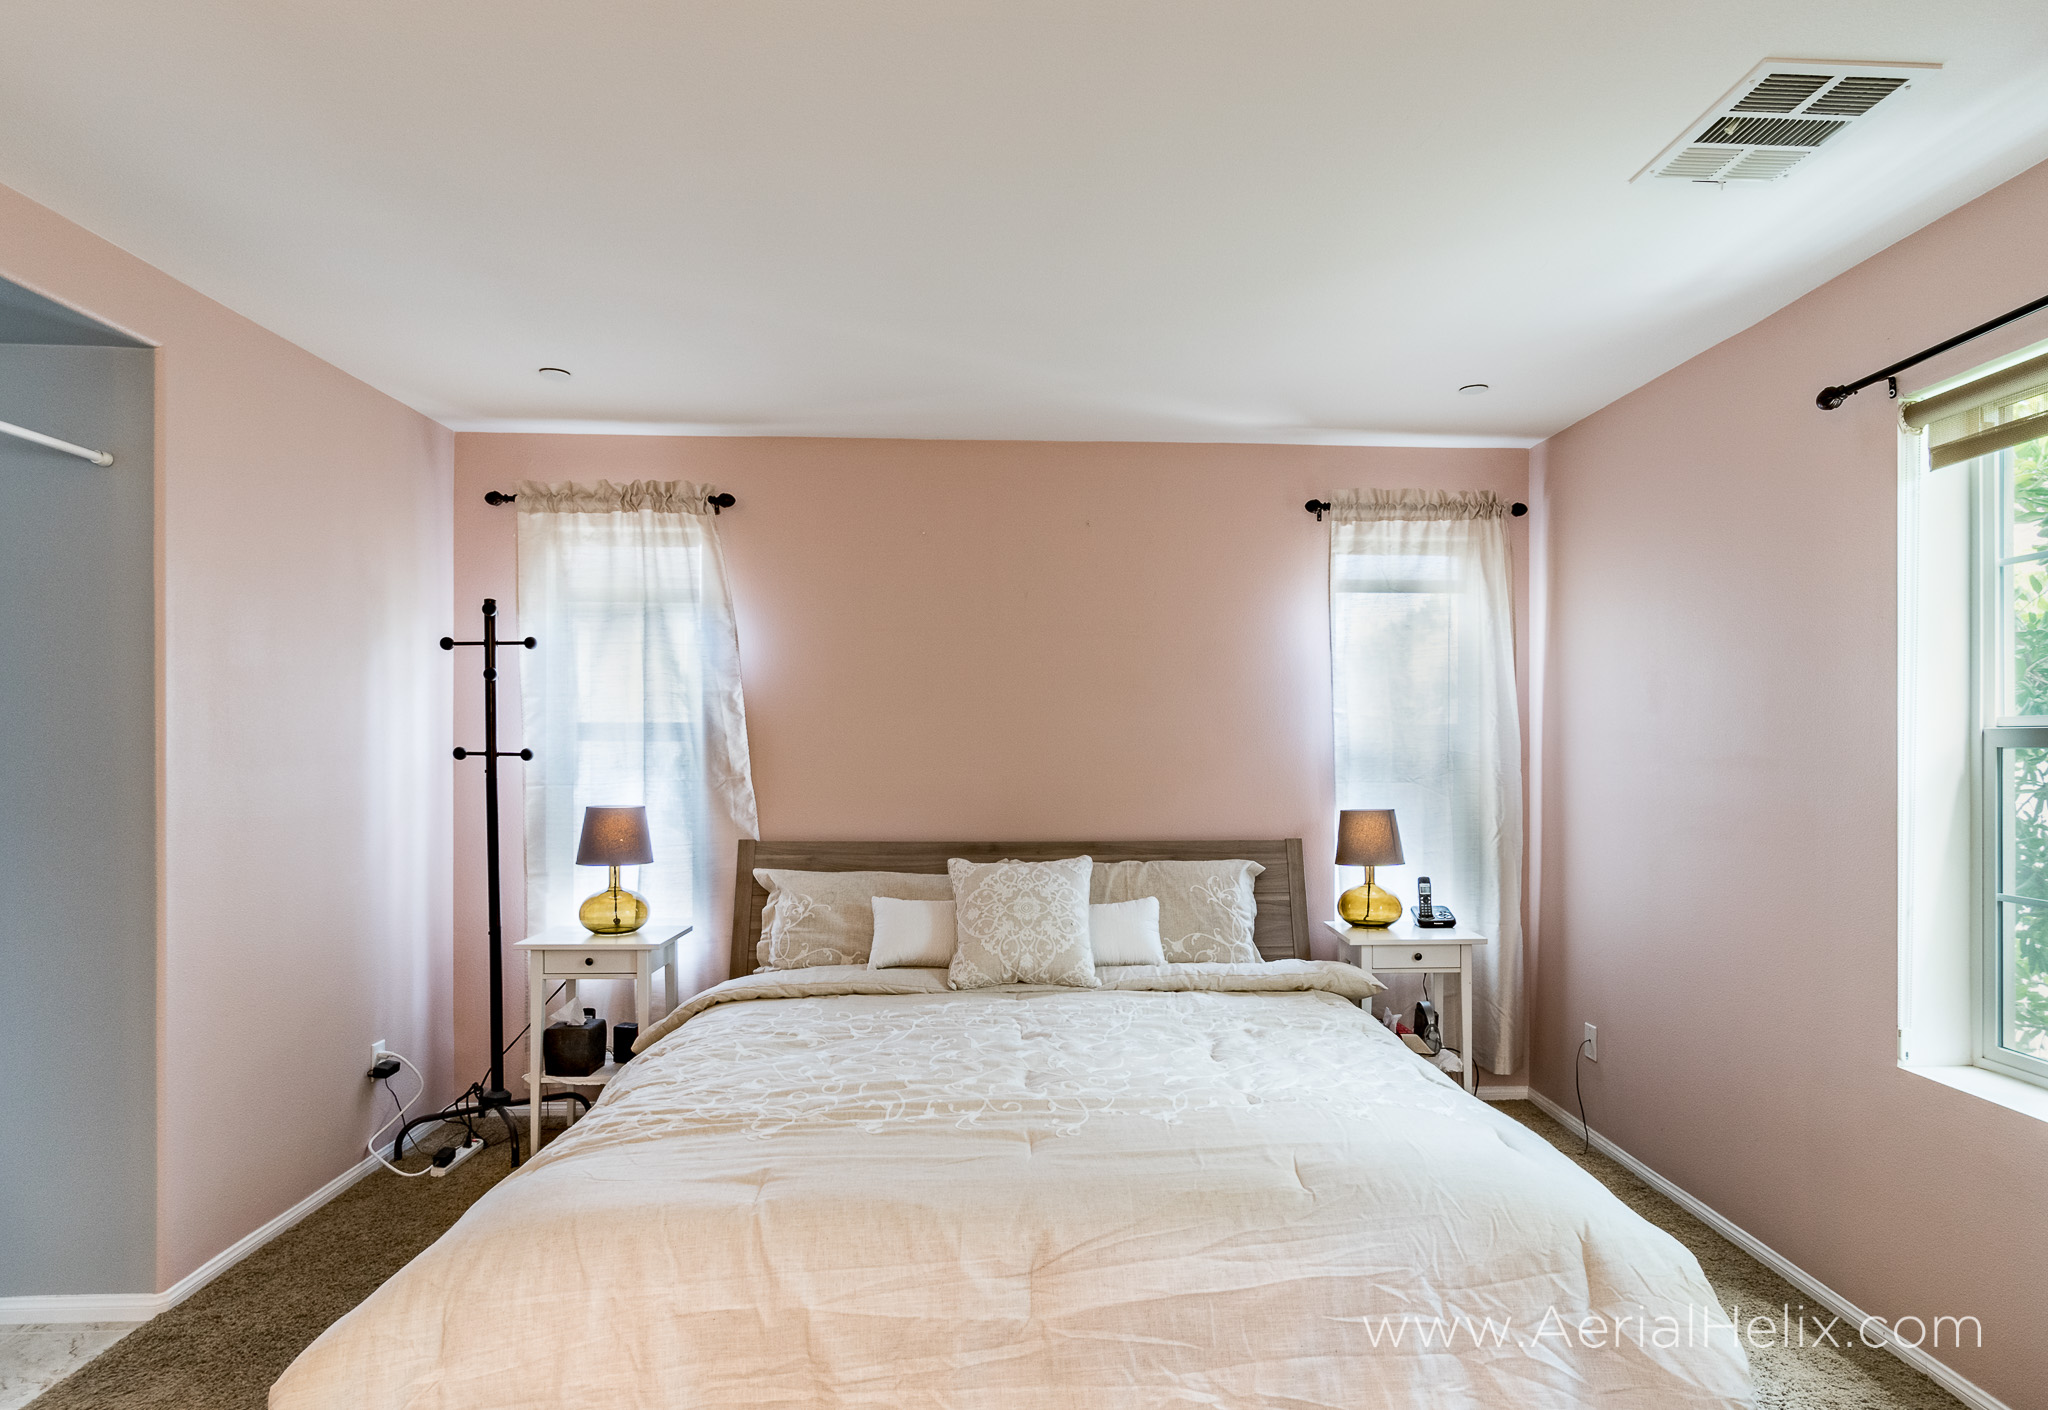 HELIX Morhouse Ave - Real-estate-photographer-29.jpg